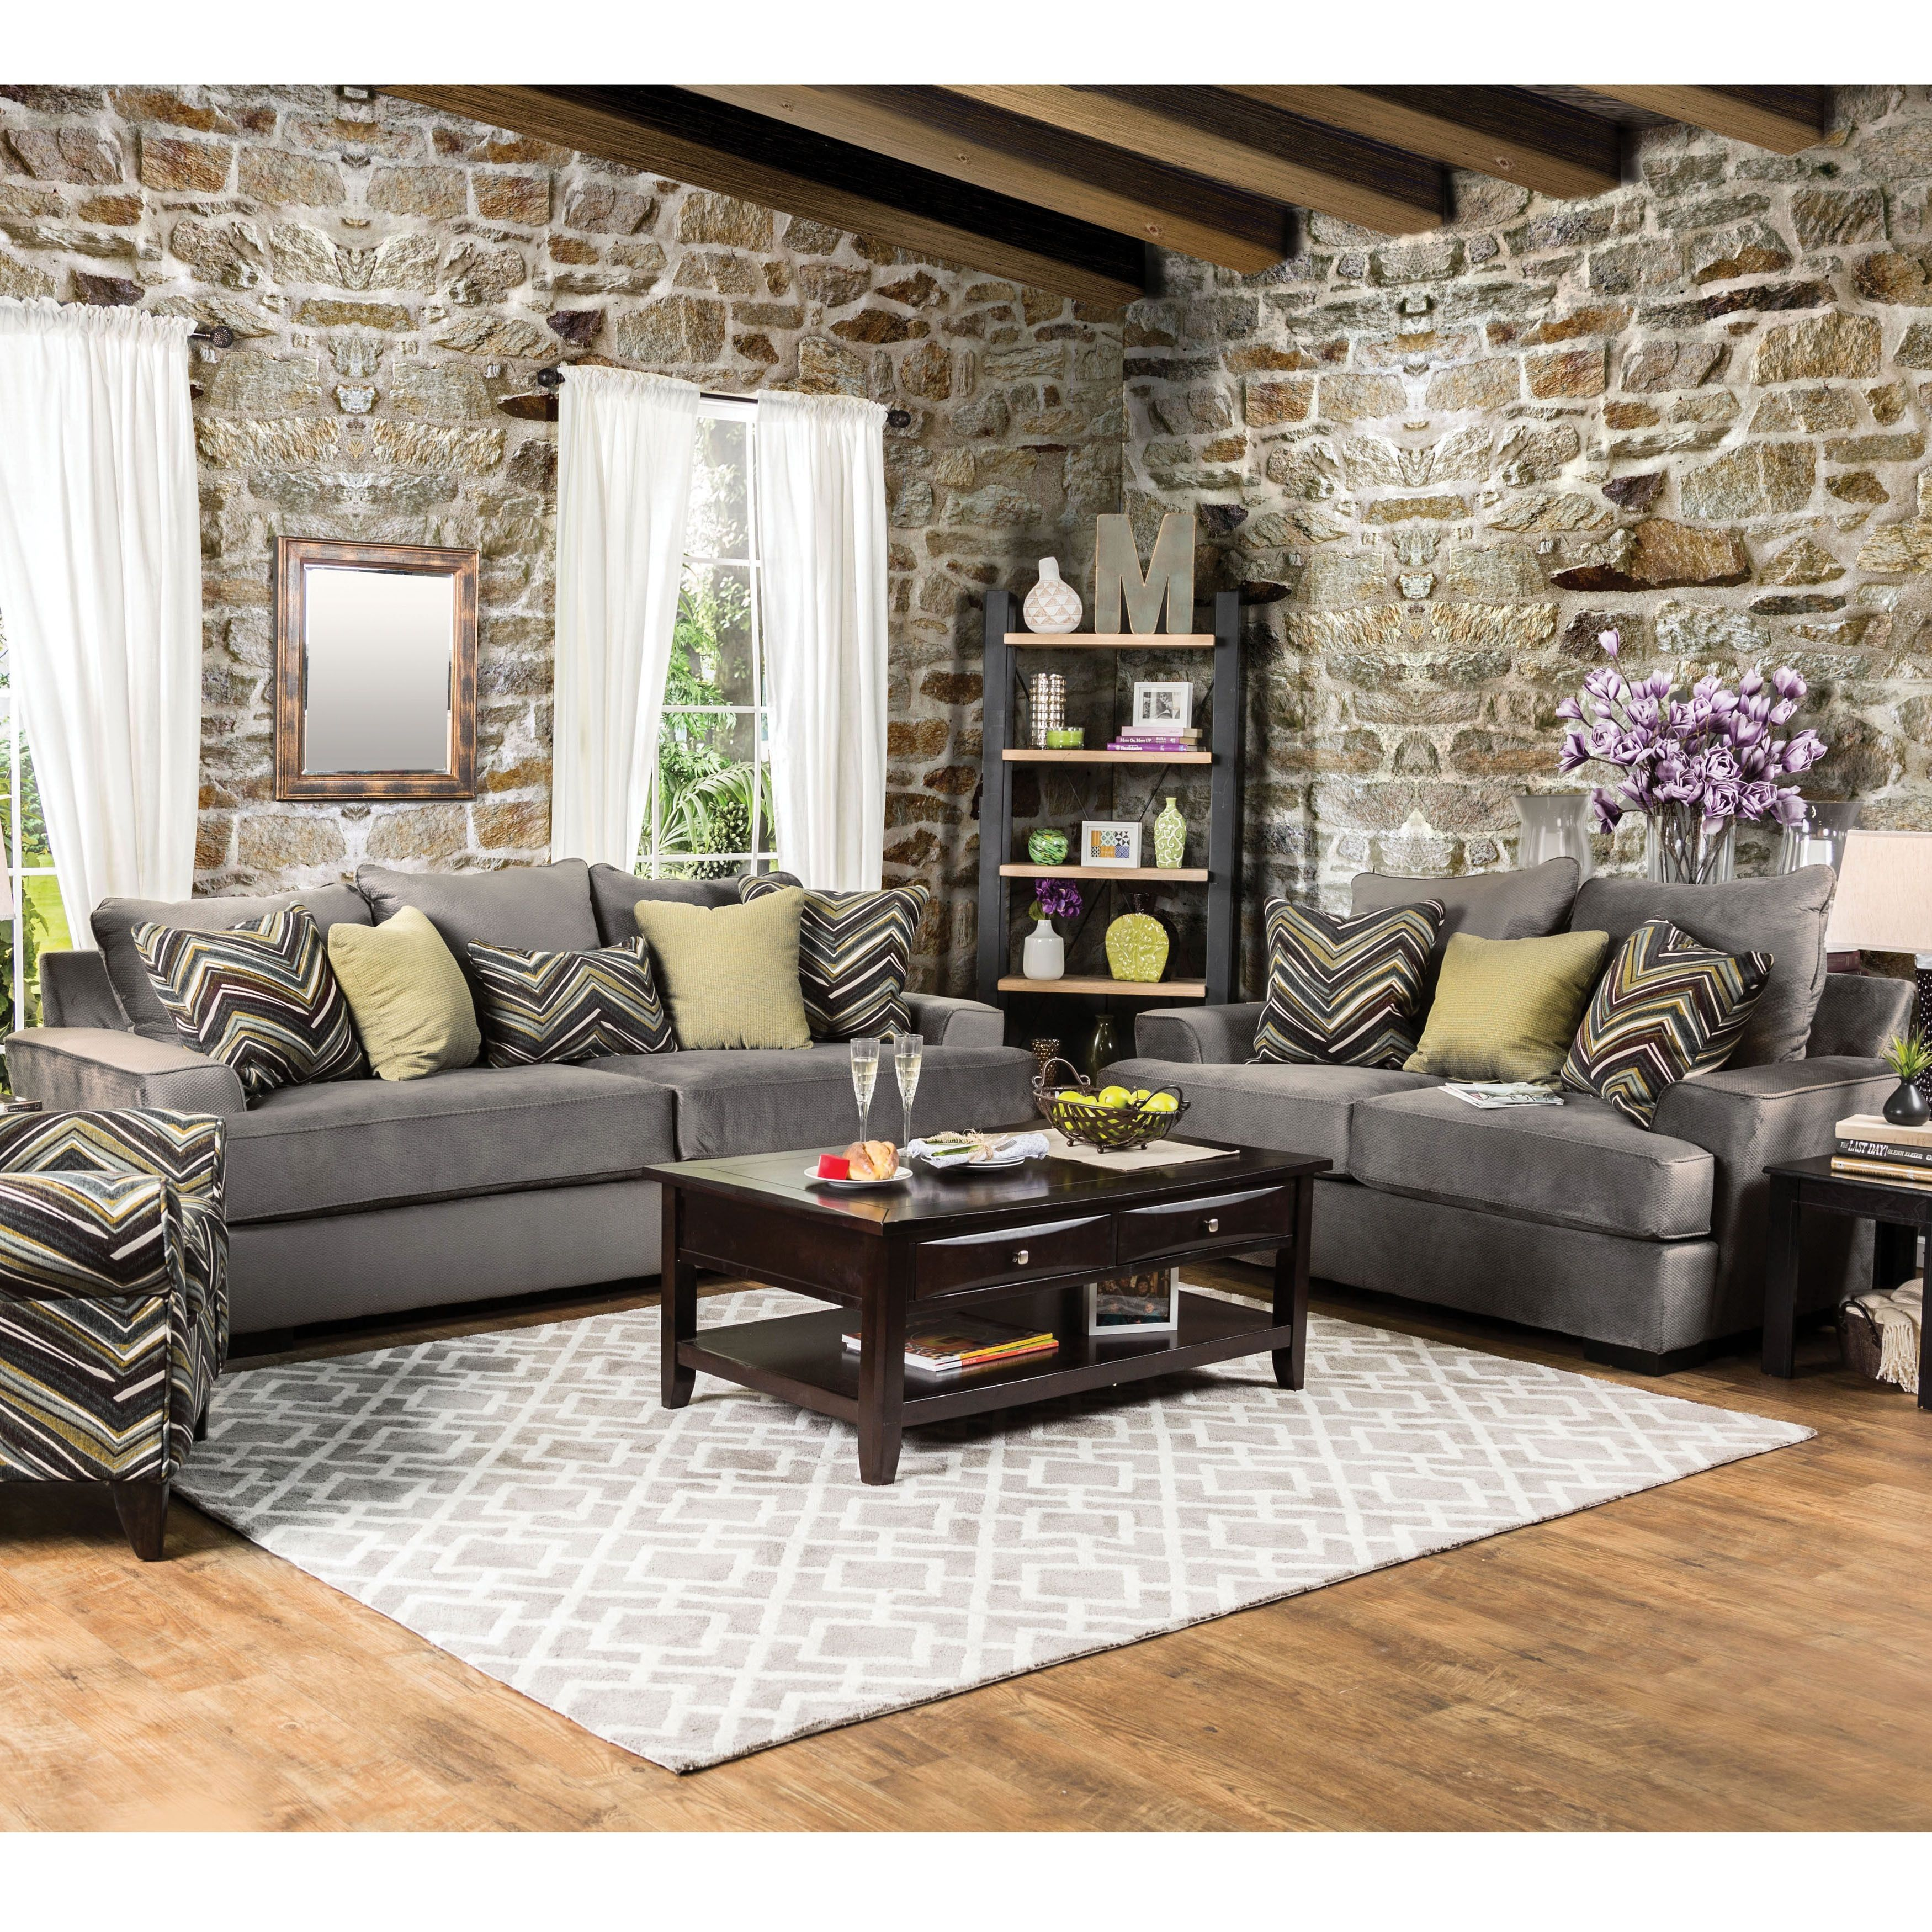 Furniture of America Avnet Contemporary 2 piece Olive Grey Fabric